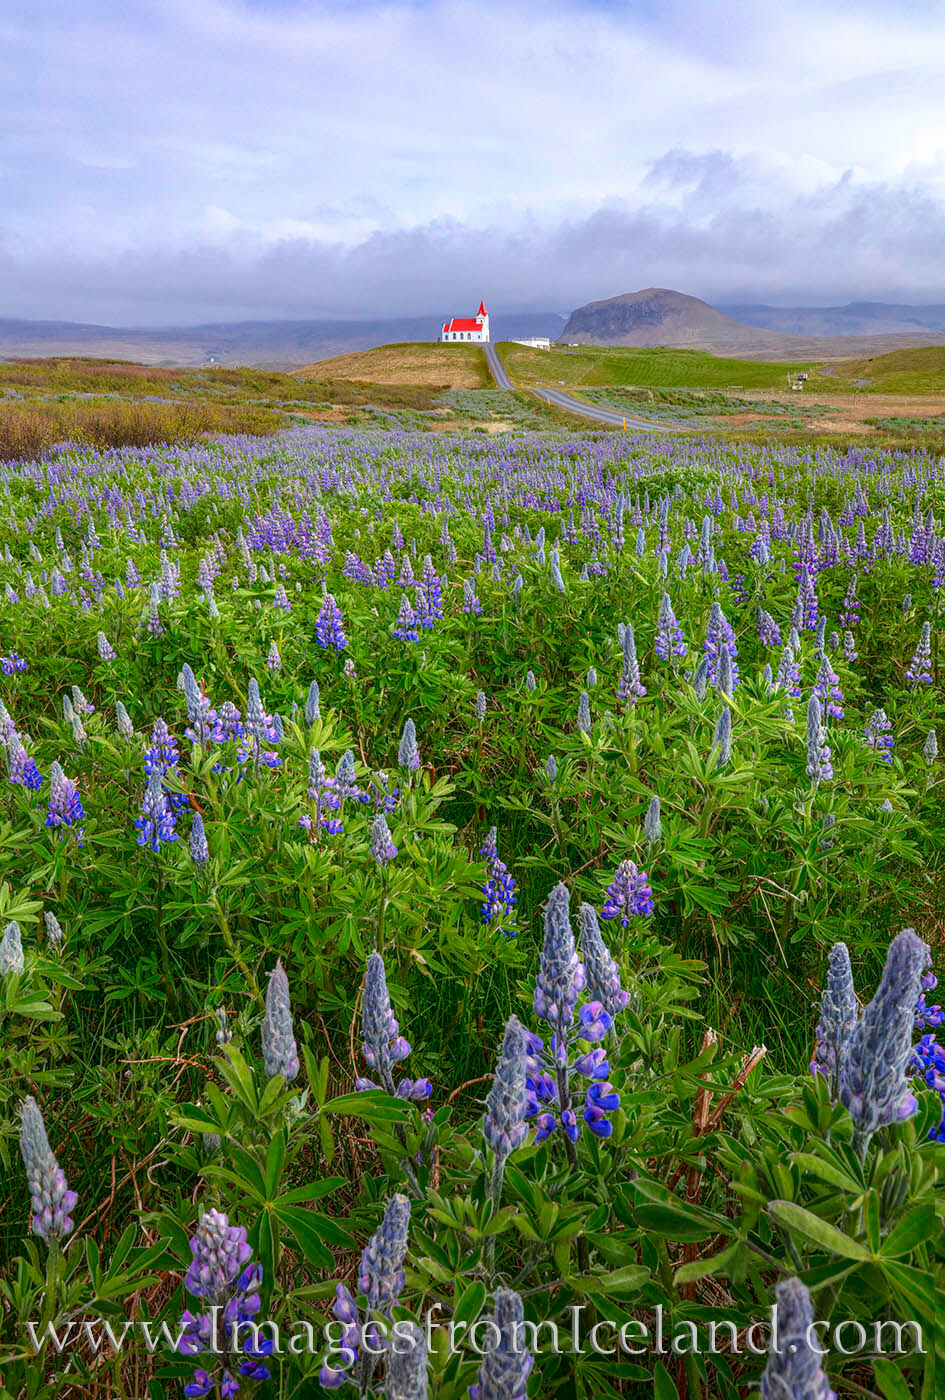 A little church with a red roof known as Ingjaldshólskirkja sits on hill surrounded by nootka lupine. Located in the Snæfellsnes...